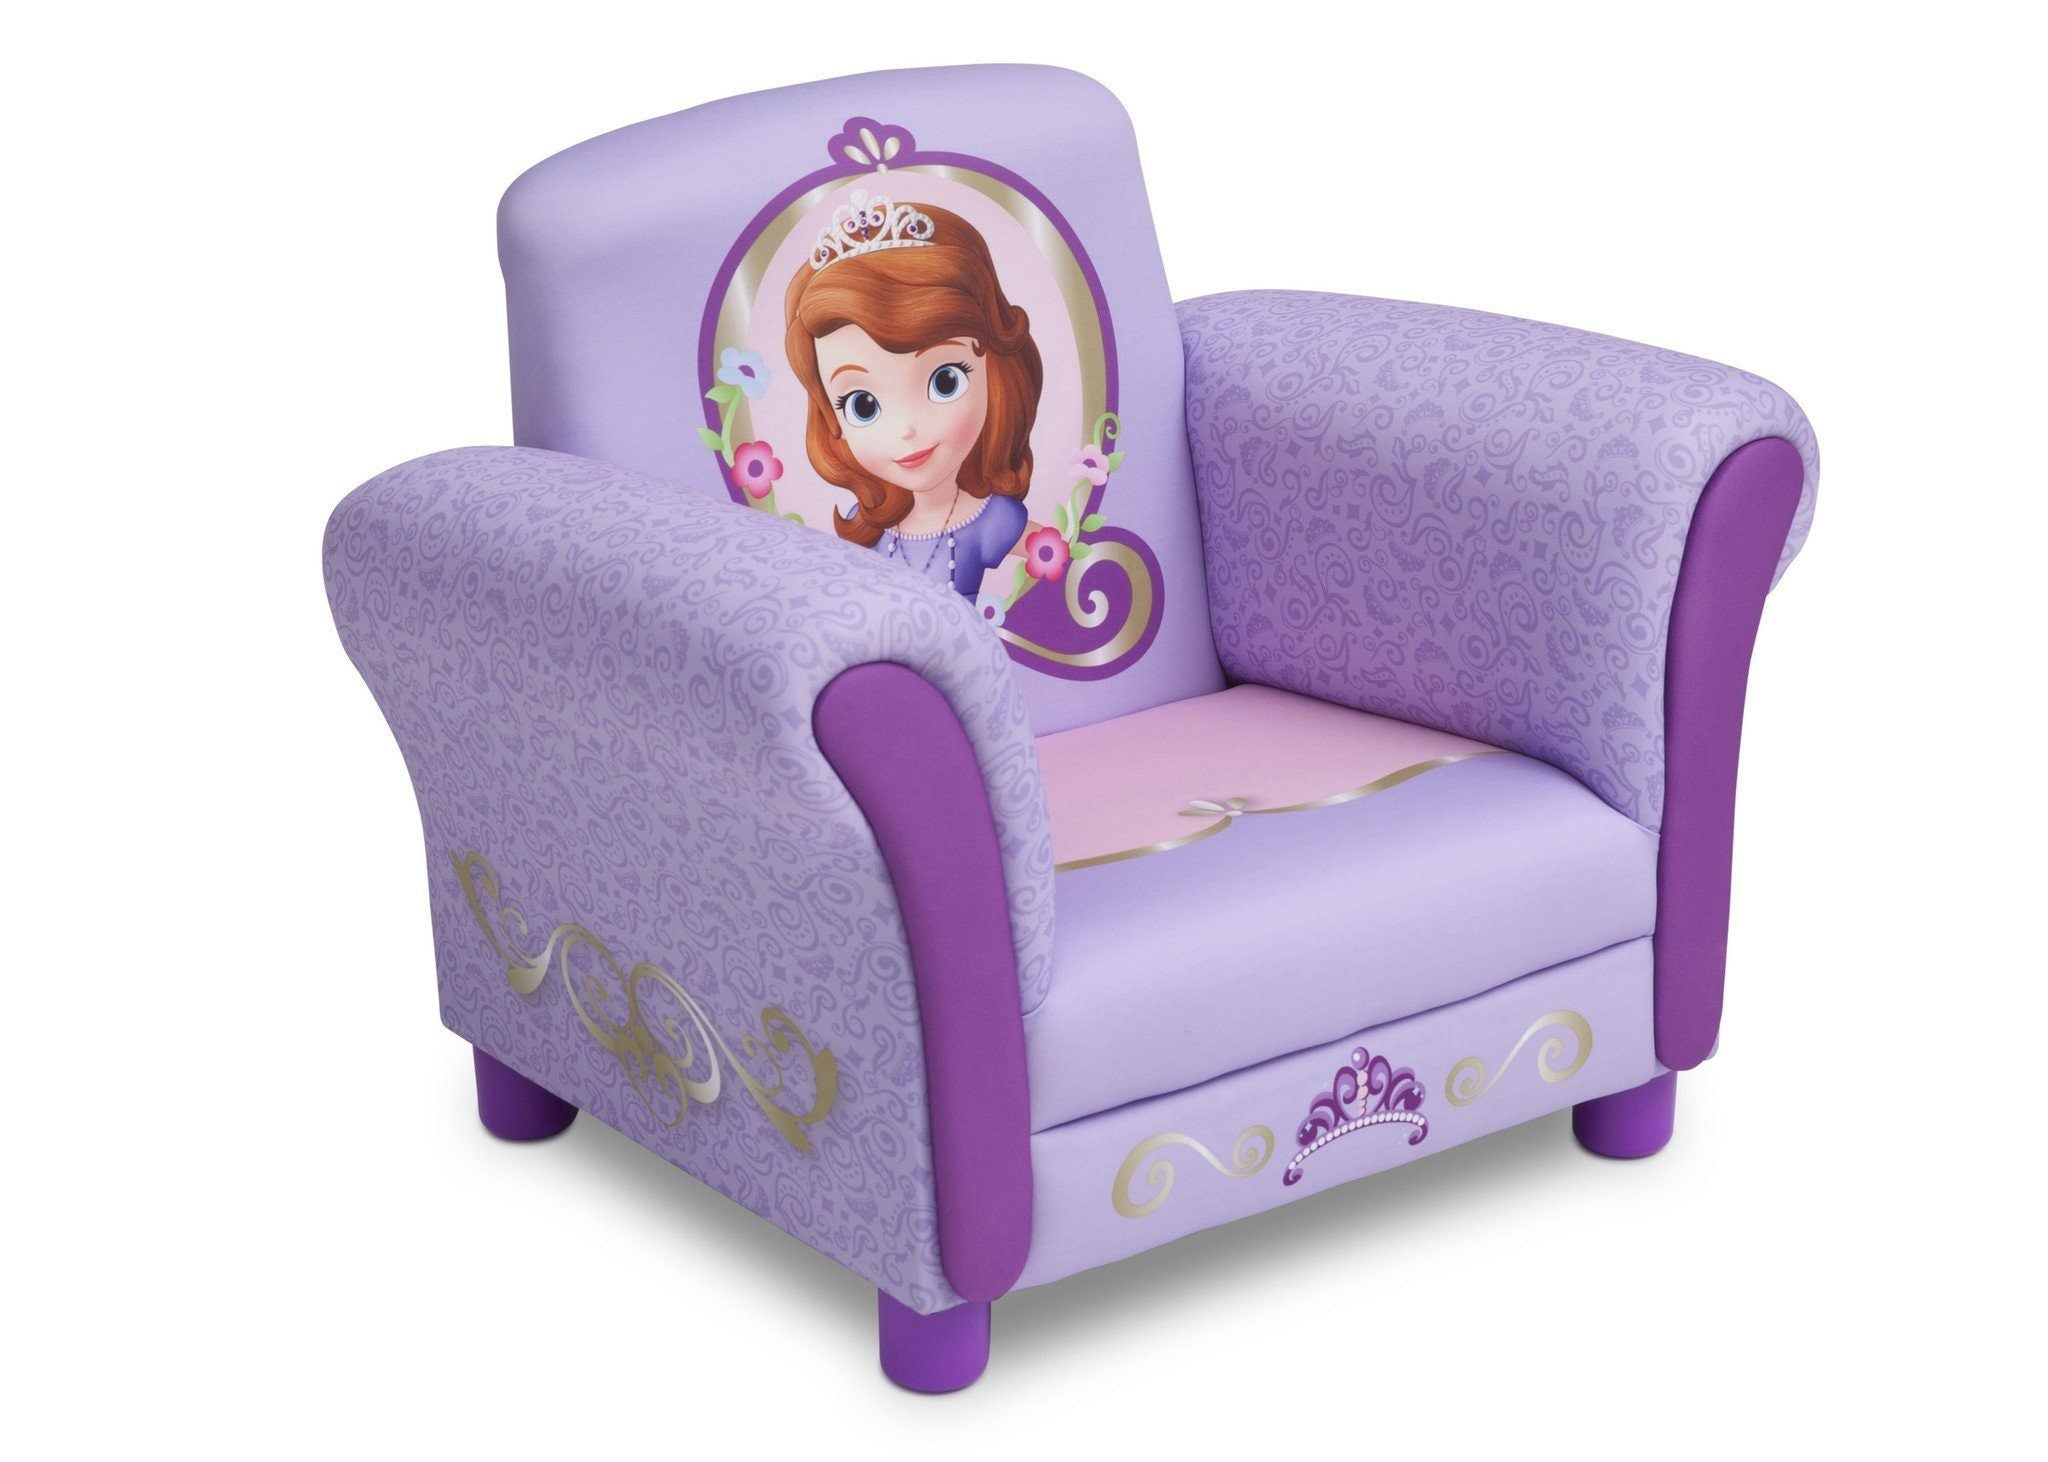 Charmant Delta Children Sofia The First Upholstered Chair Right Side View A1a ...